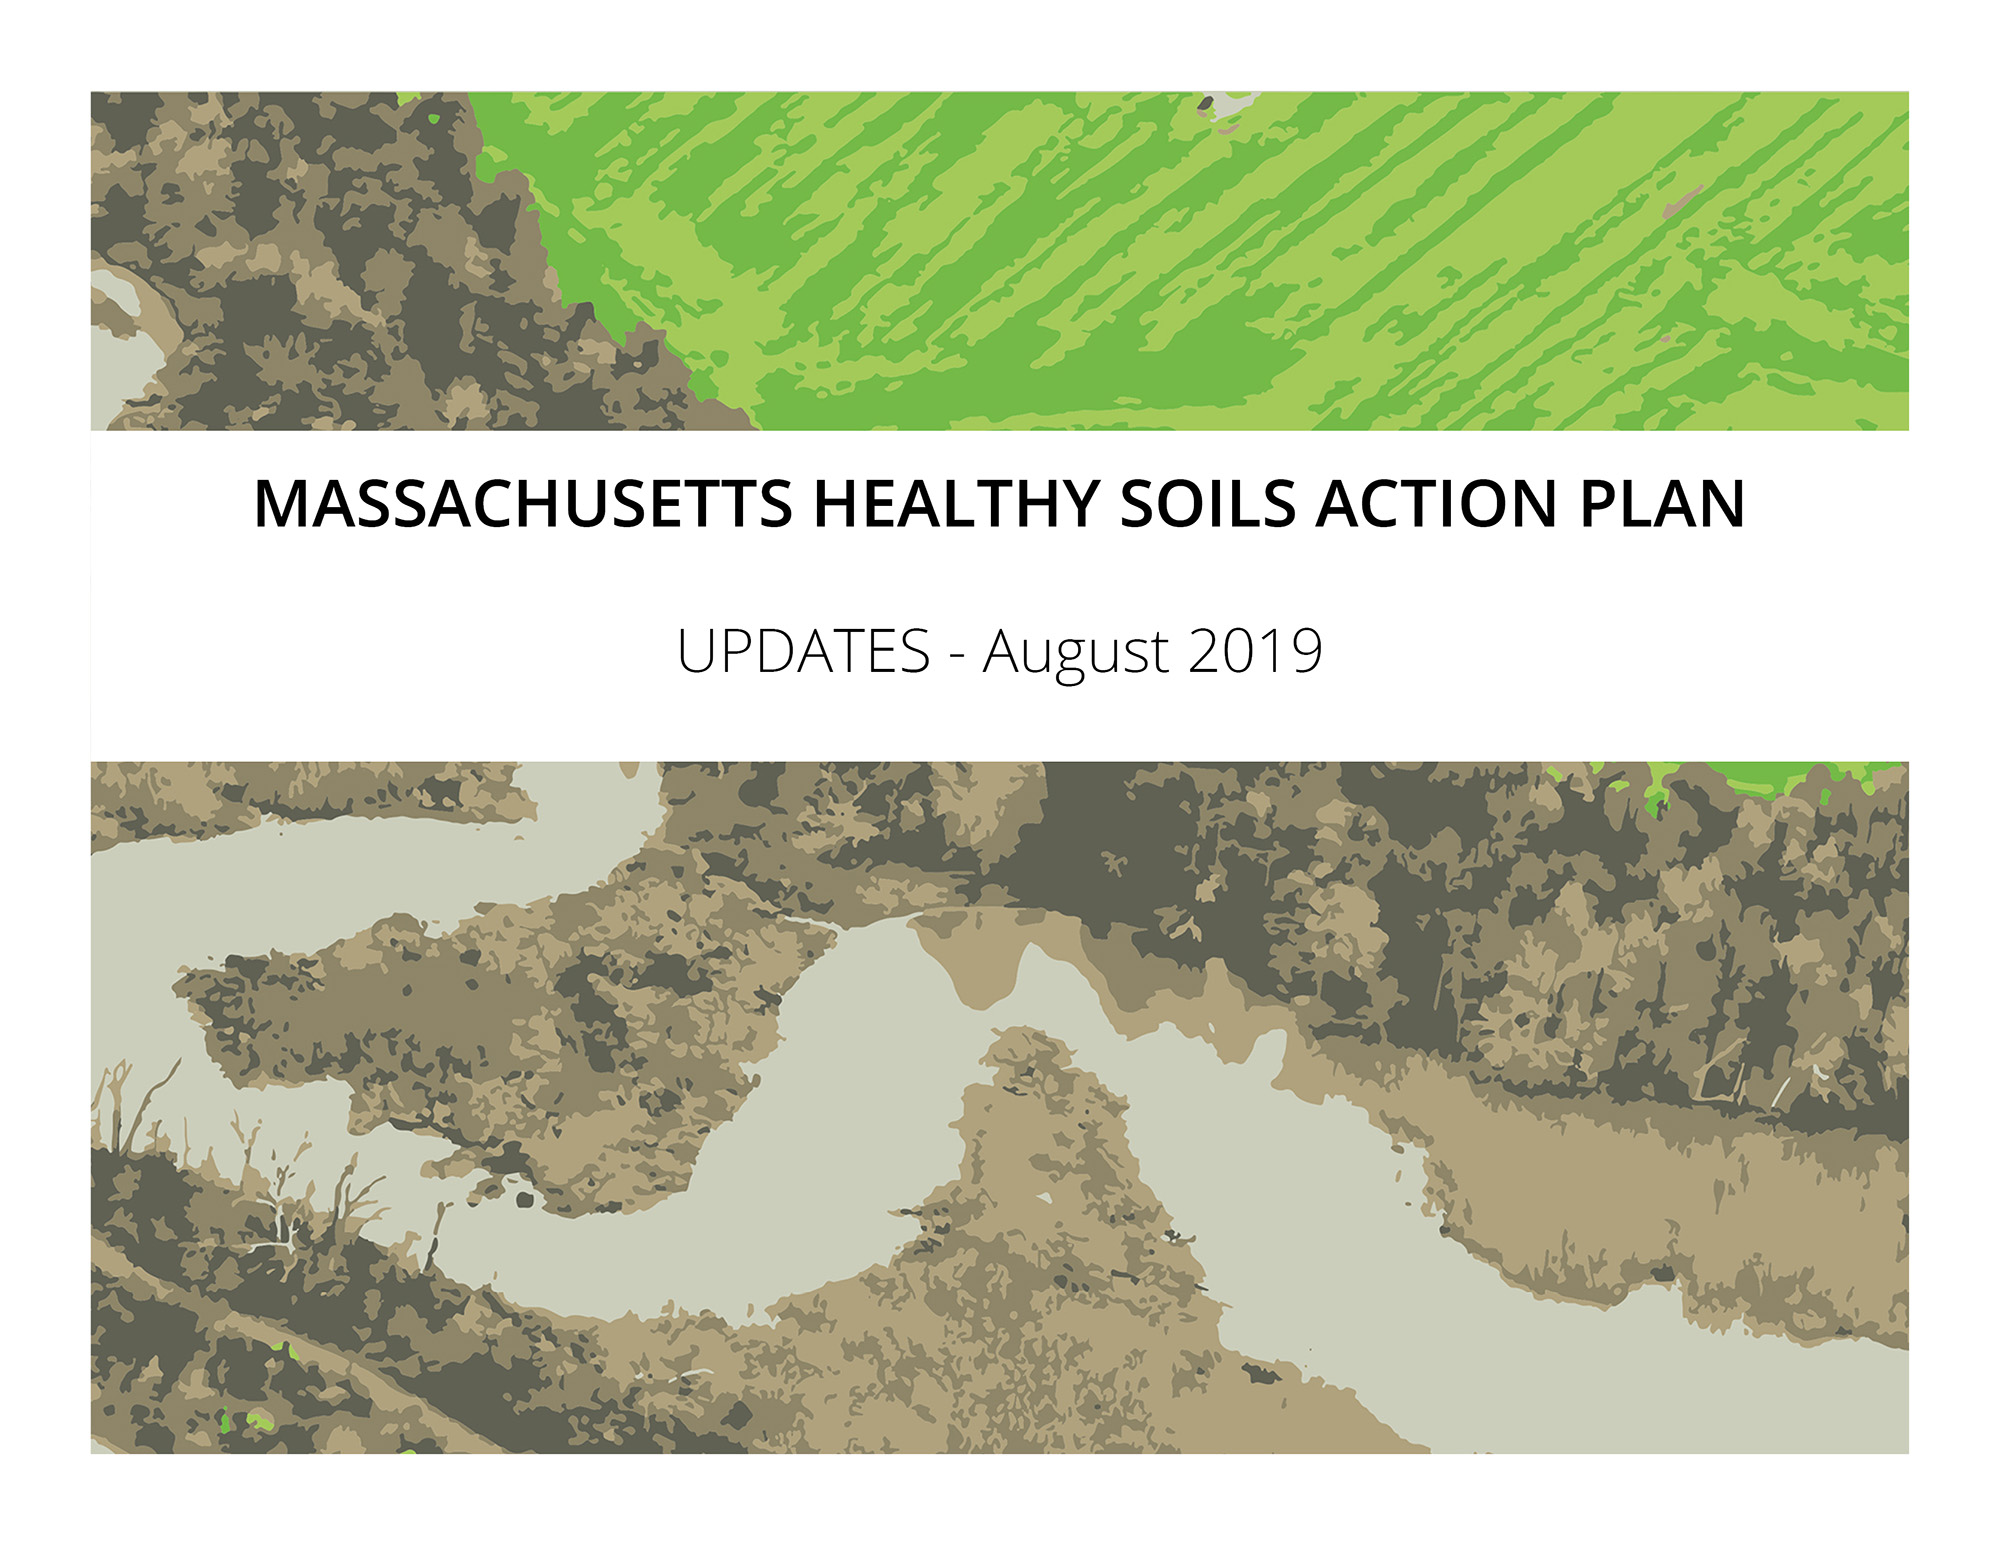 Healthy Soils Action Plan: Updates